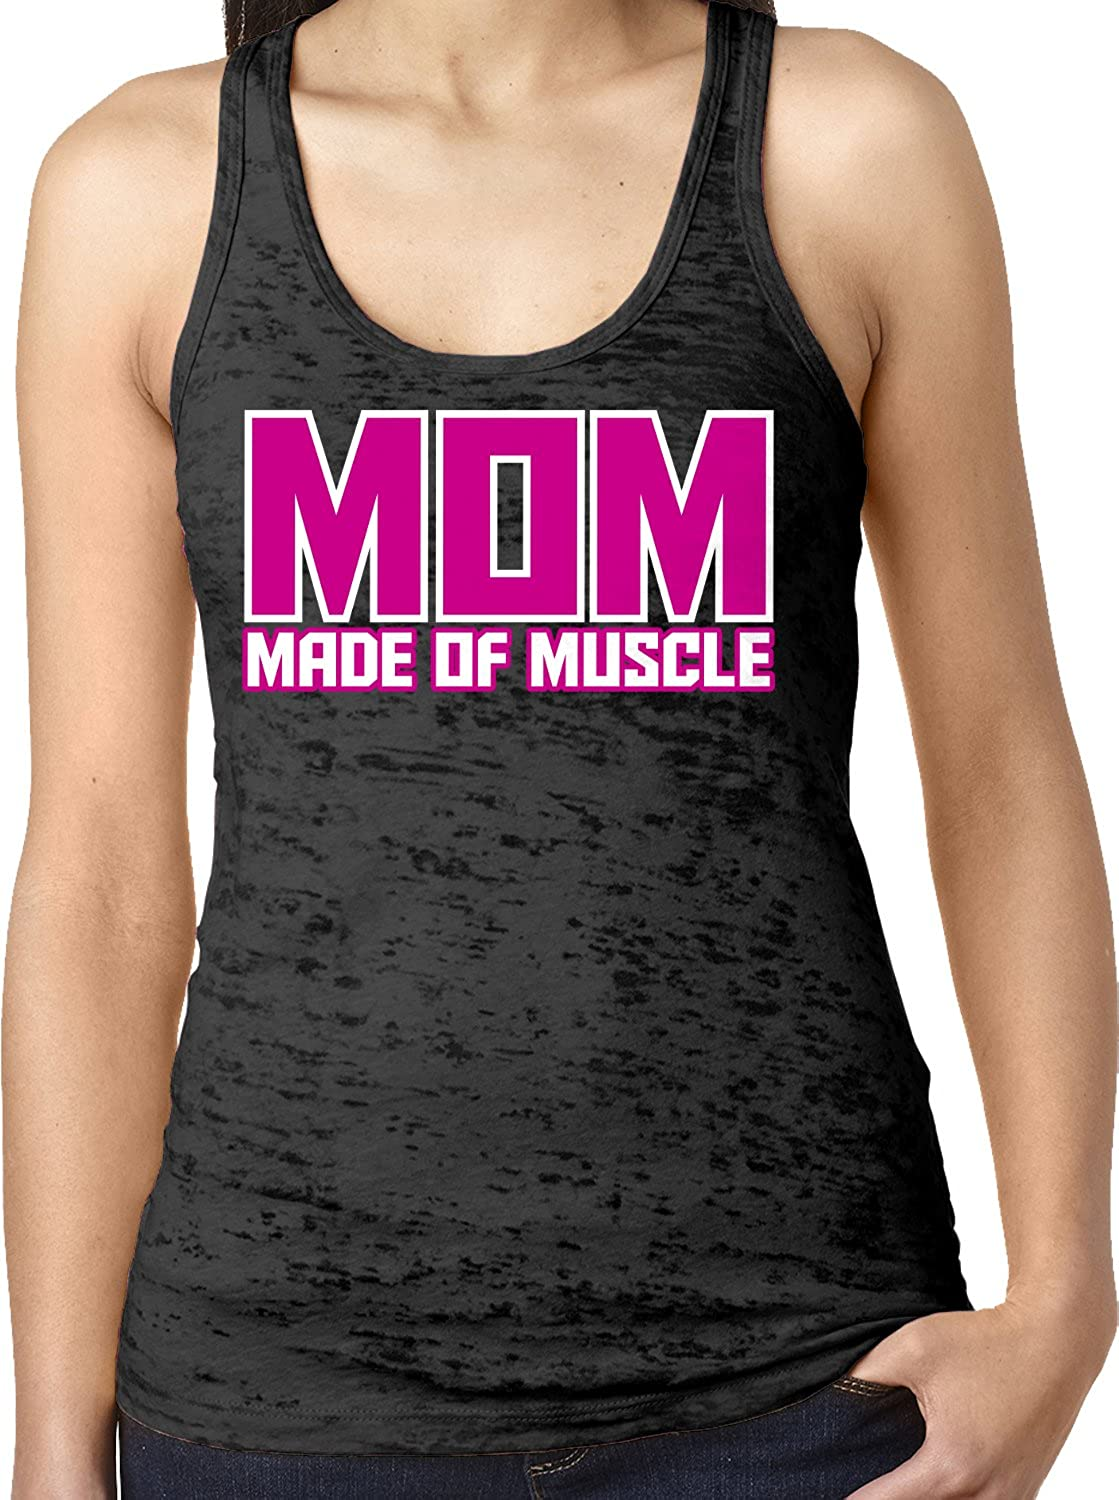 MILF Mom In Love With Fitness ladies t-shirt gym mum present mothers day gift